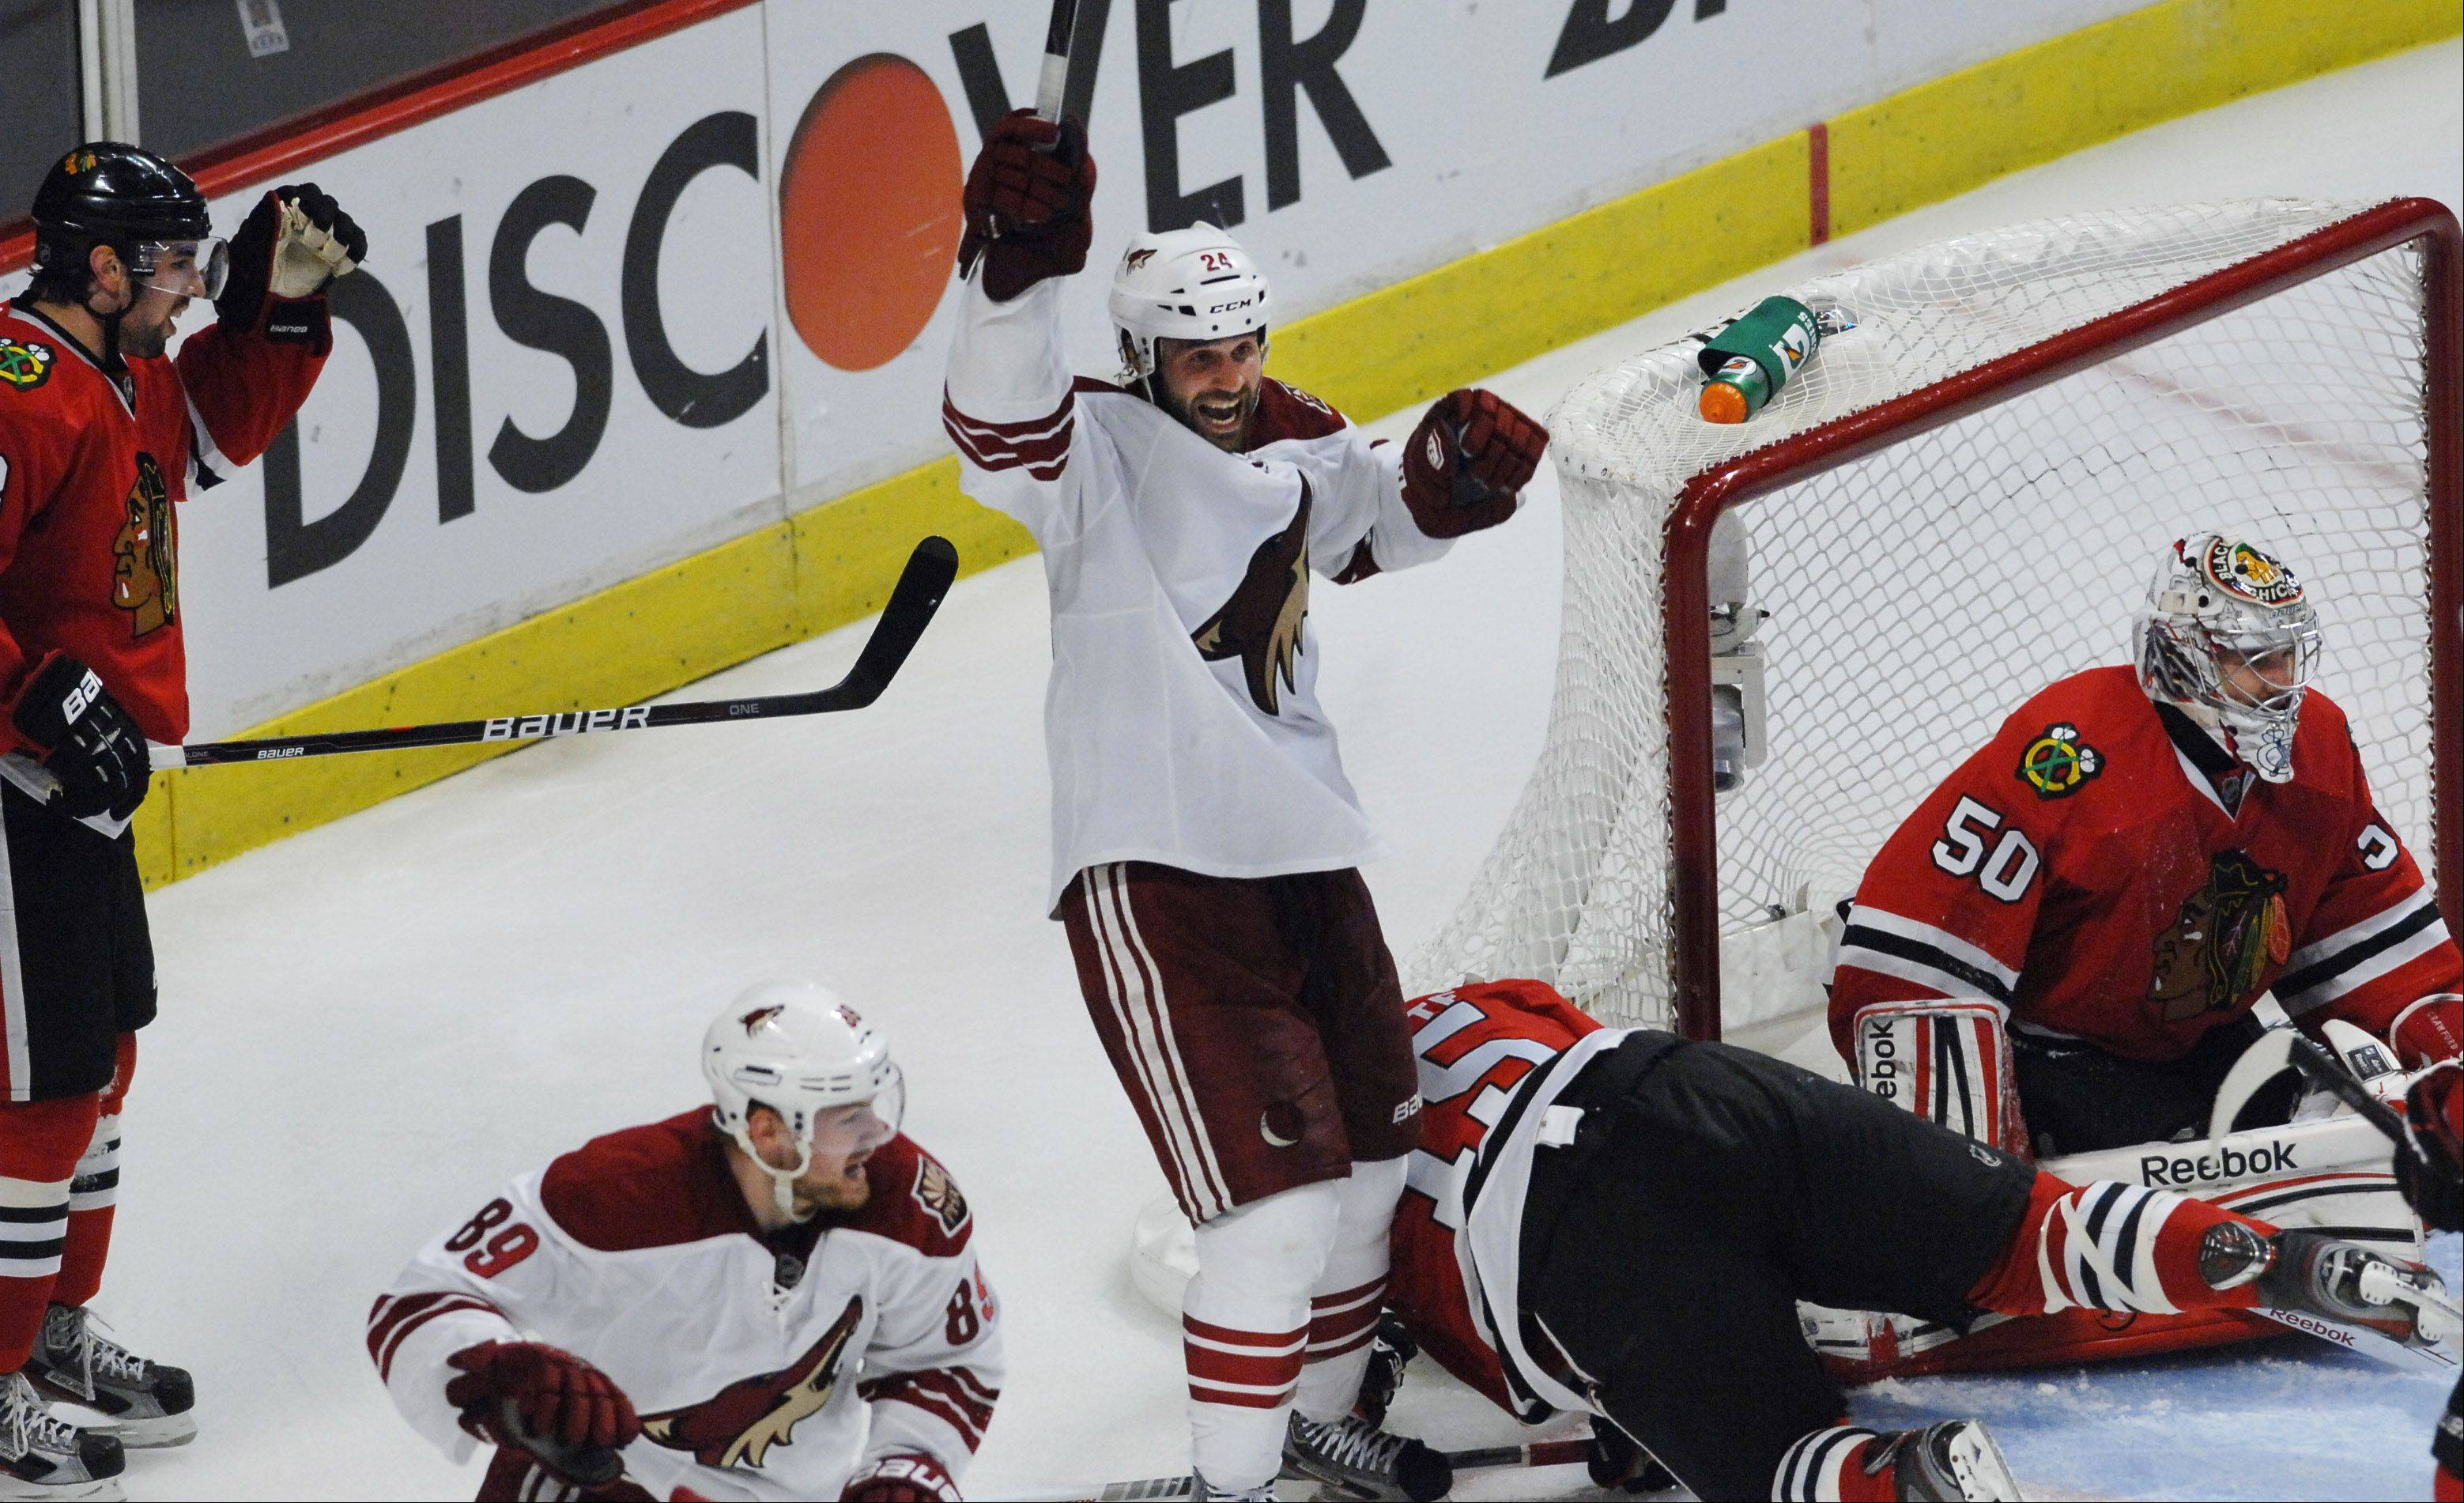 Phoenix Coyotes' center Kyle Chipchura celebrates teammate Mikkel Boedker's goal in overtime as Chicago Blackhawks' Nick Leddy, Andrew Brunette, and goalie Corey Crawford react.